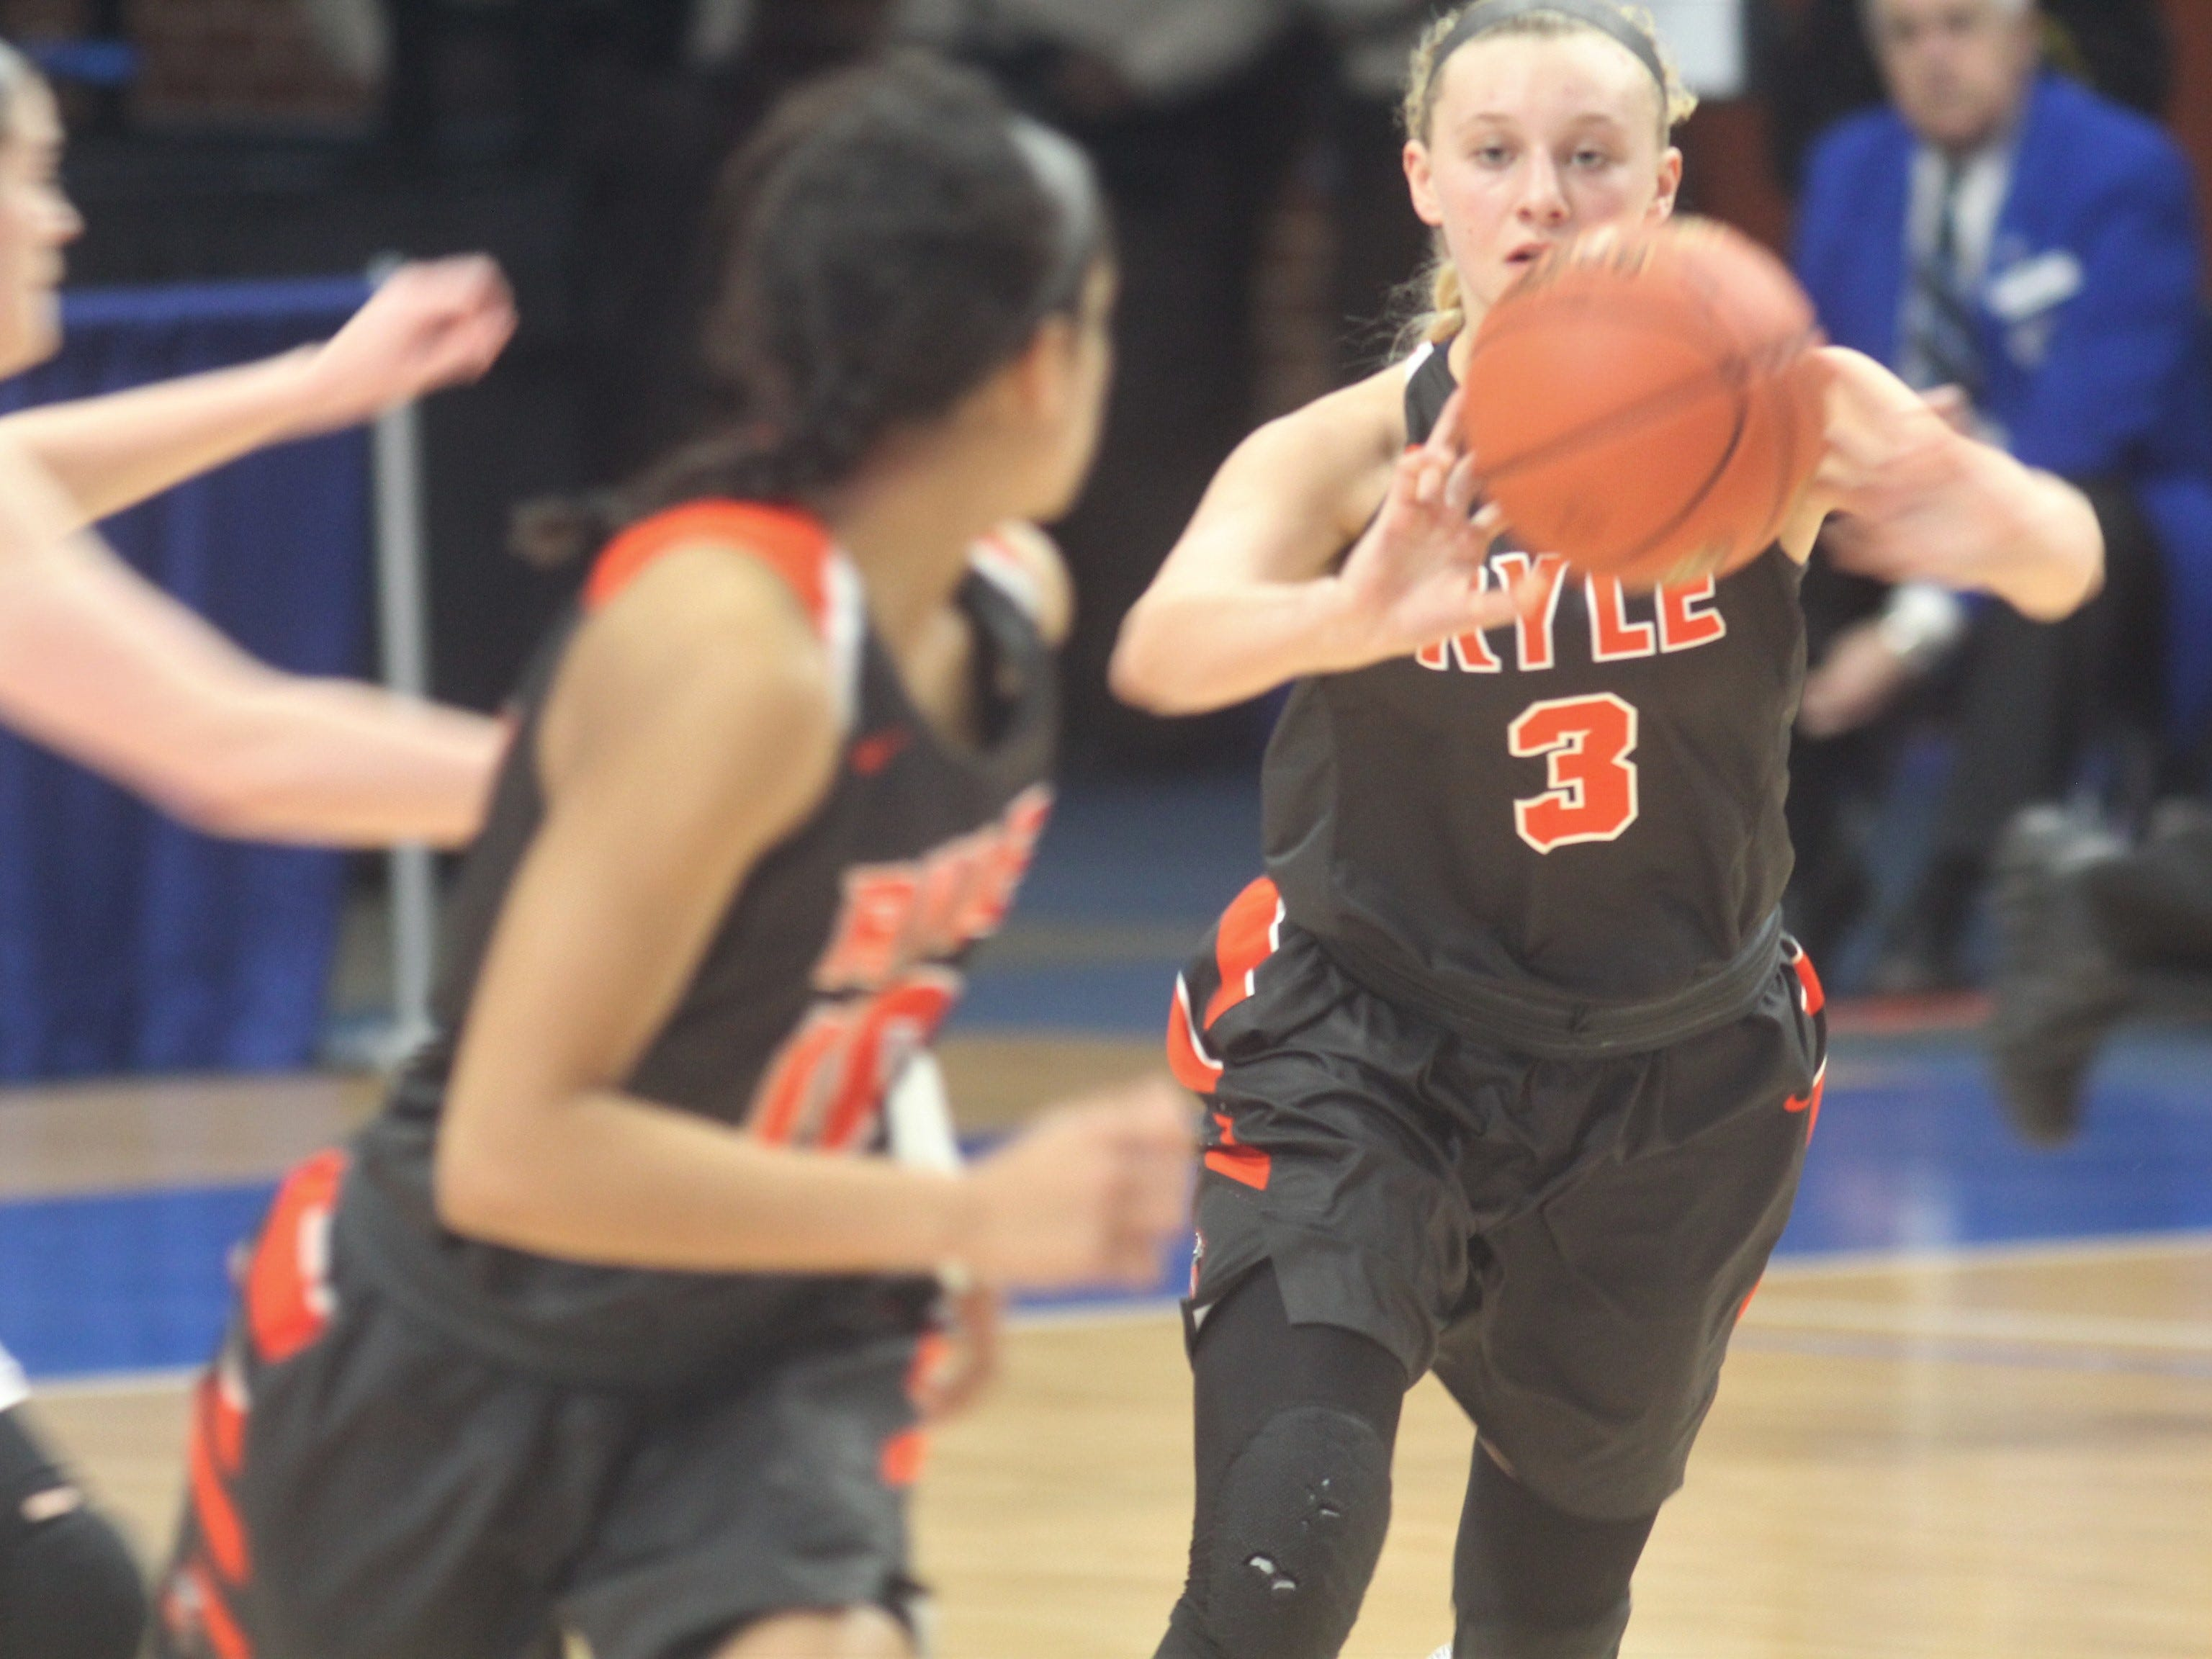 Ryle soph Brie Crittendon passes ahead in transition as Ryle defeated George Rogers Clark 64-51 in the state quarterfinals of the KHSAA Sweet 16 girls basketball tournament March 15, 2019 at Rupp Arena, Lexington KY.